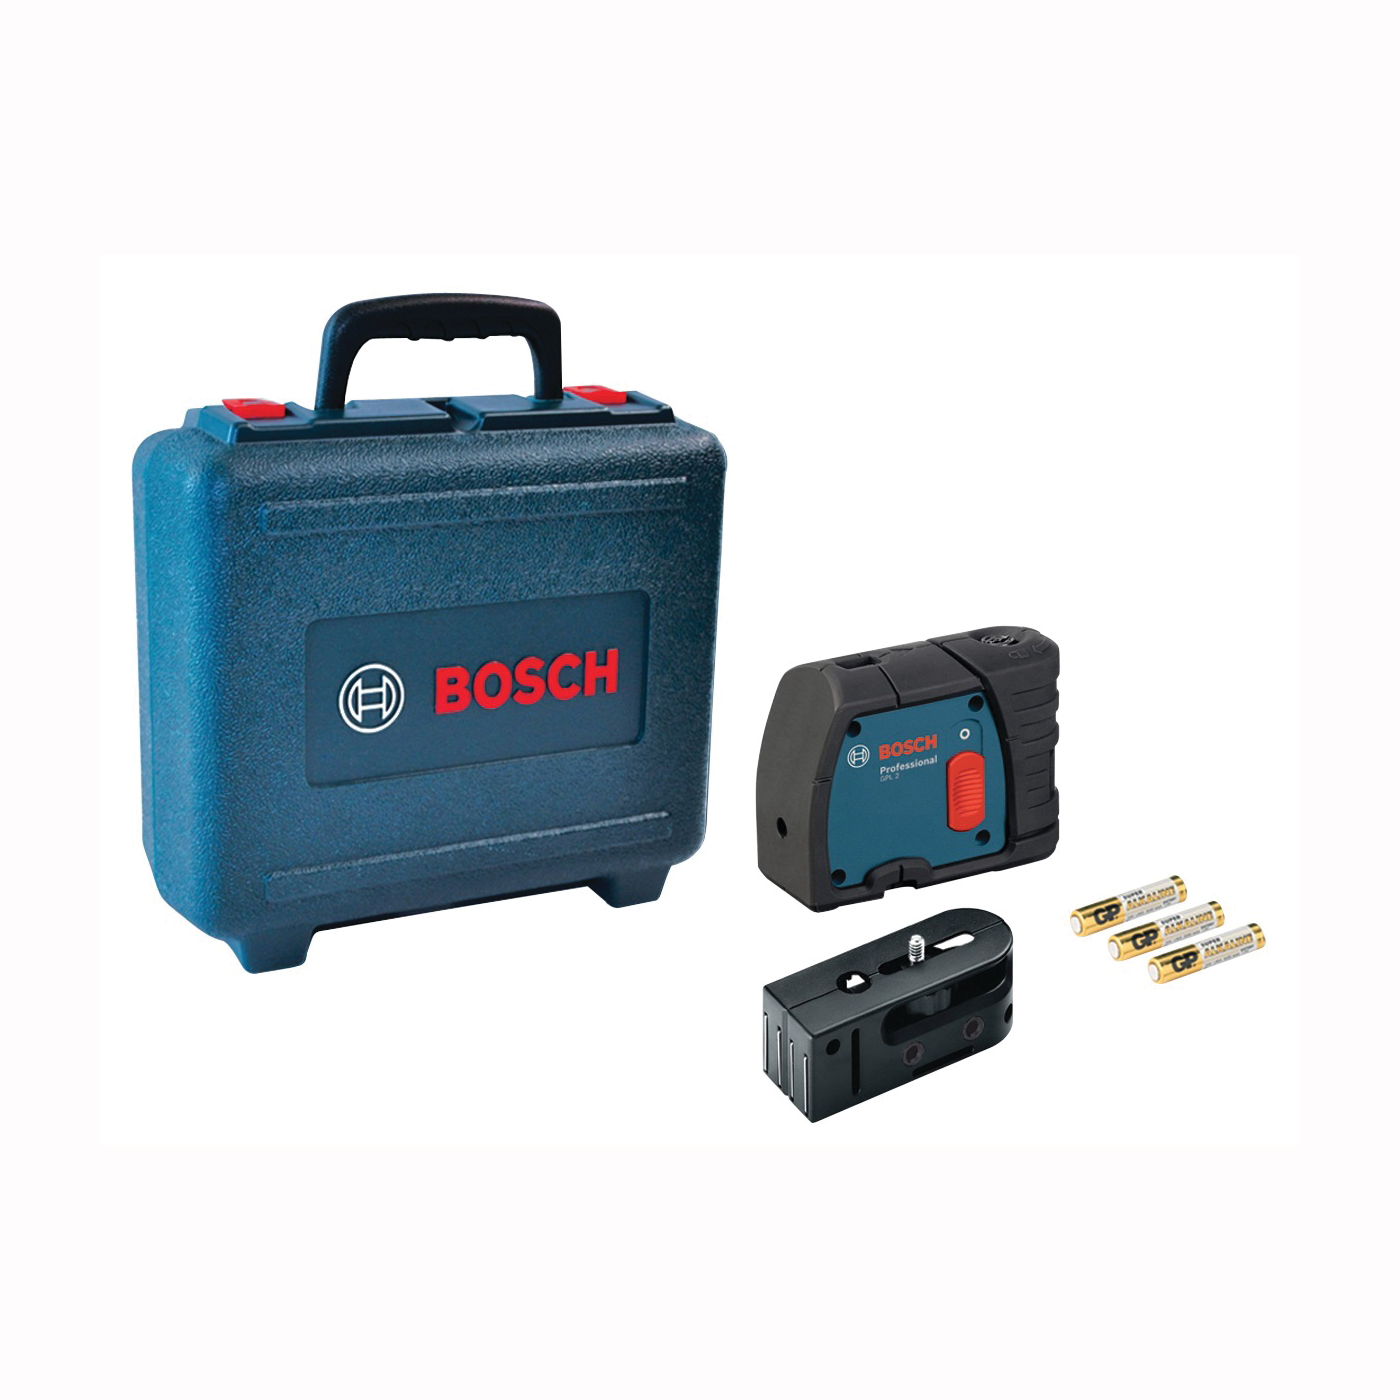 Picture of Bosch GPL 2 Laser Level, 100 ft, +/-1/4 in at 100 ft Accuracy, 2 -Beam